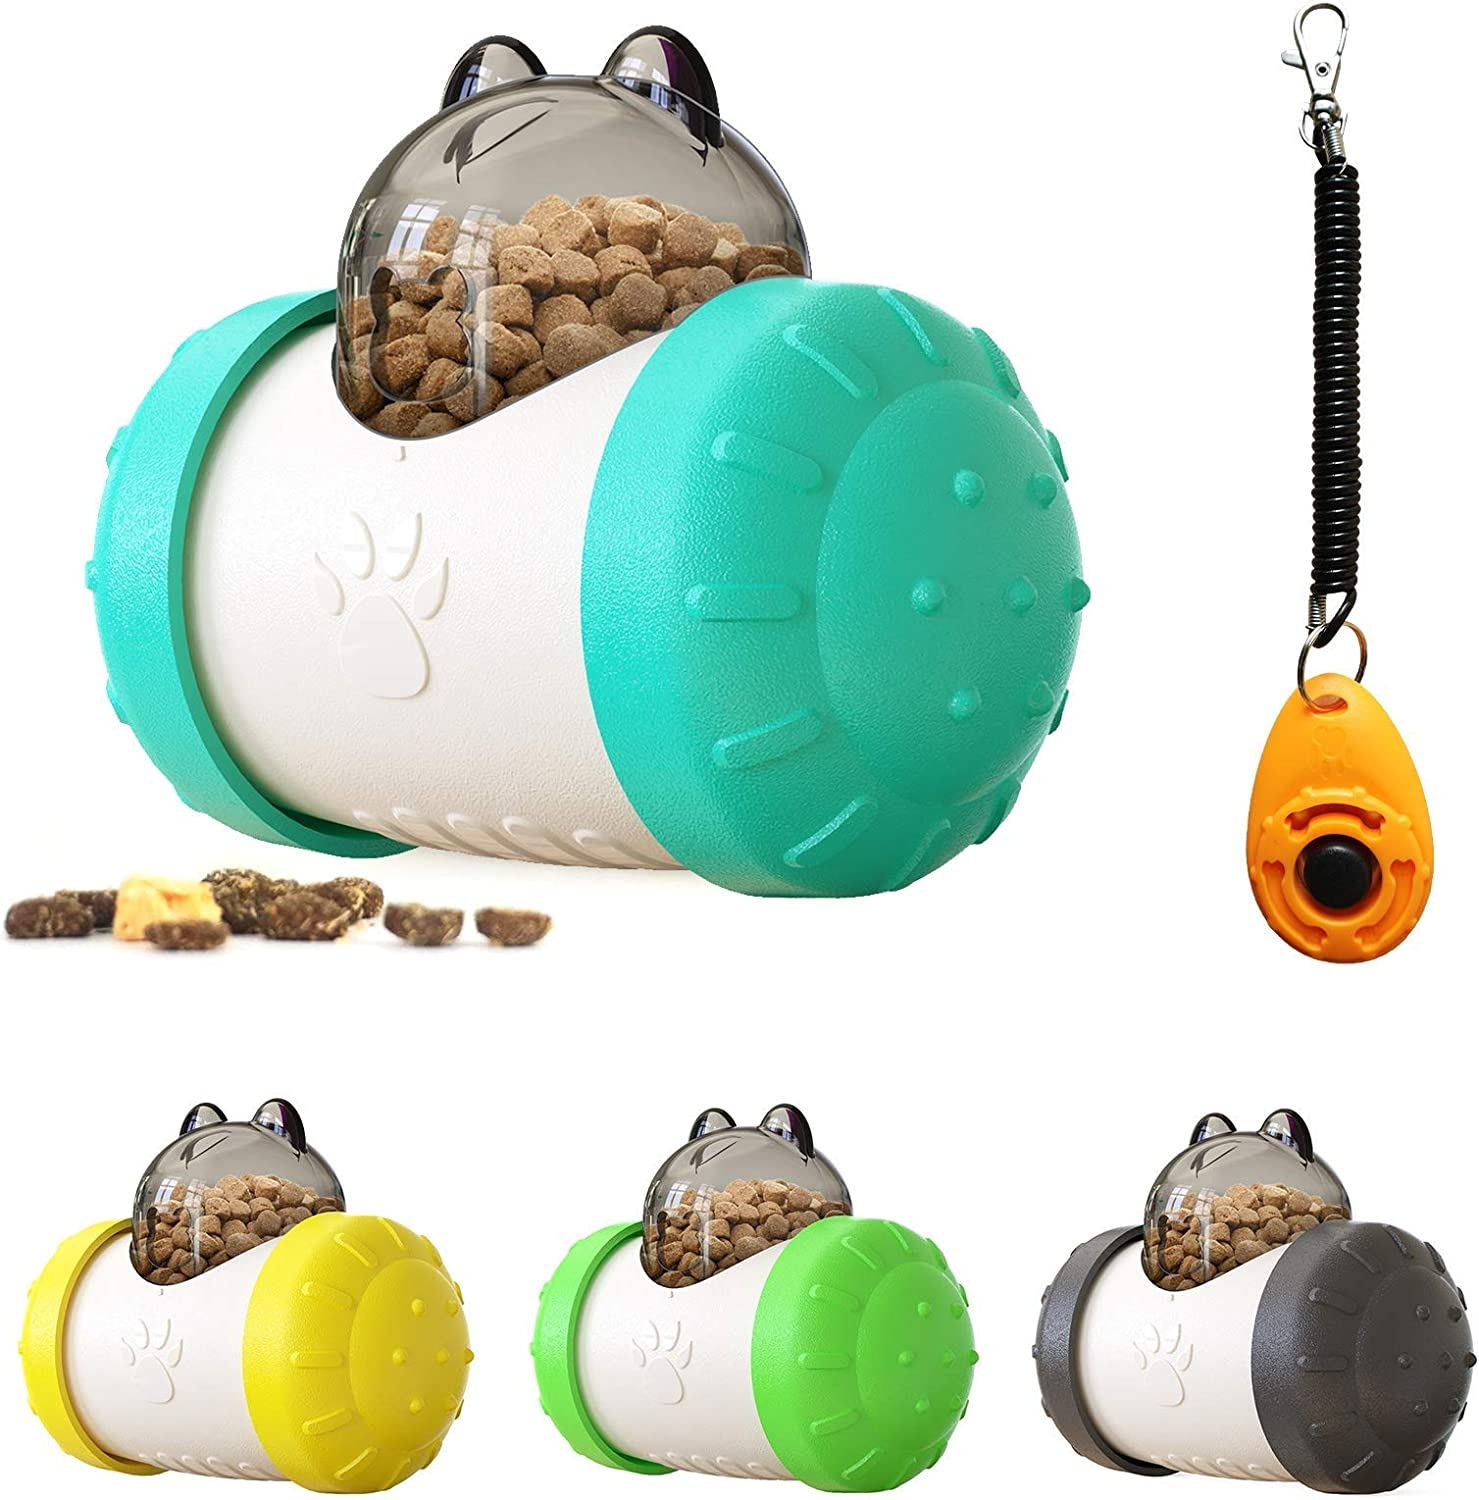 Dog Mind stimulating Toys,Cat Enrichment Bowl,Dog Mind stimulating Toys Large Breed with Friendly ABS Material,Swing Bear Food Dispensing Dog Toy Turquoise +White